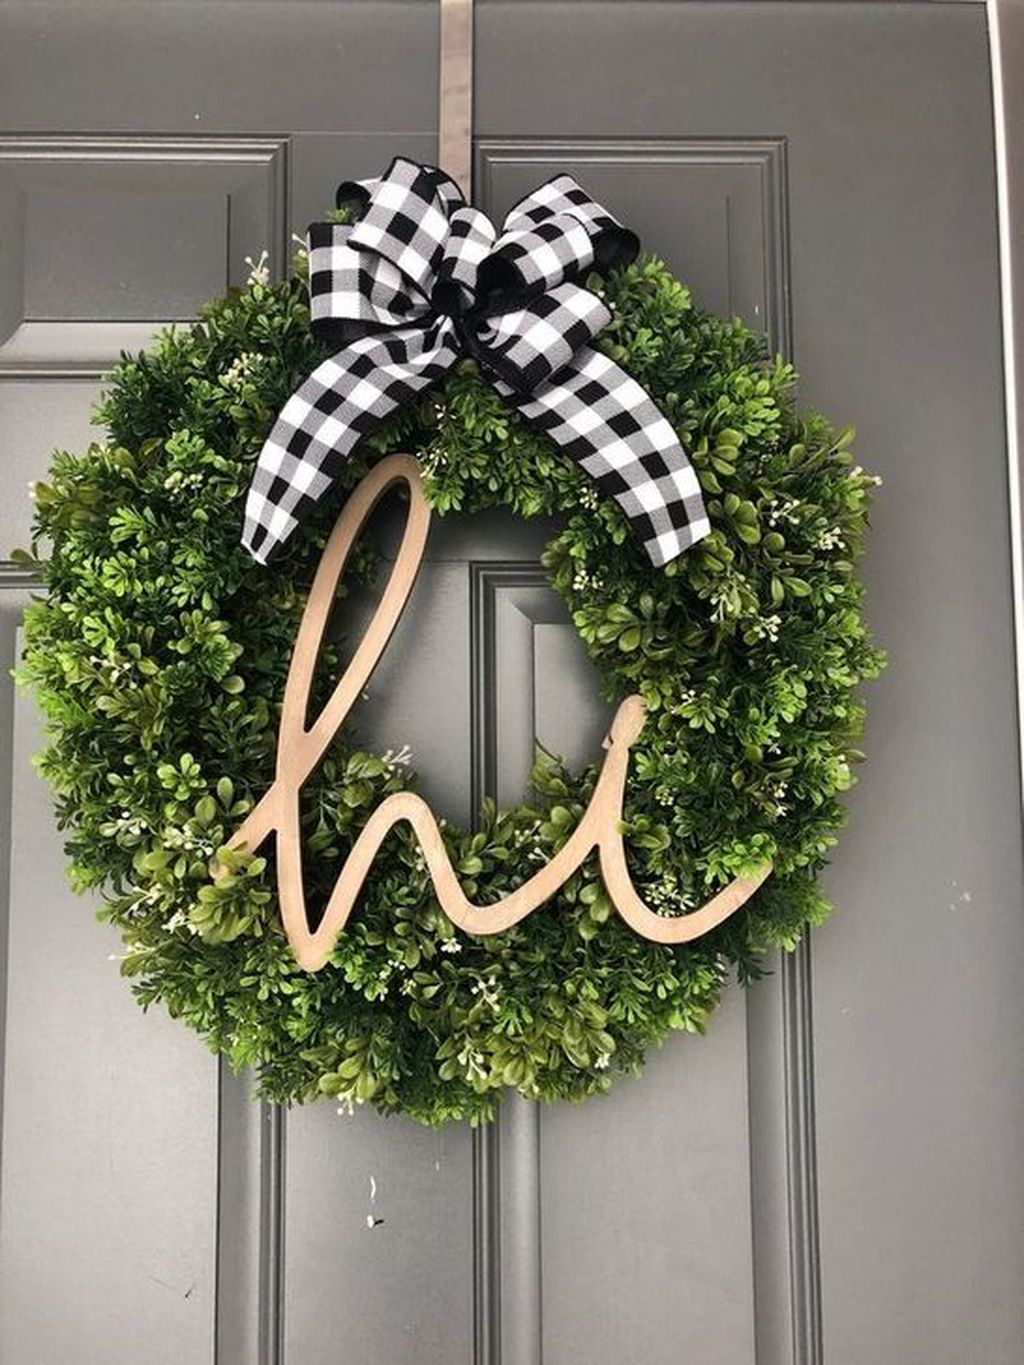 Inspiring Spring Door Wreaths For Your Home Decoration 20